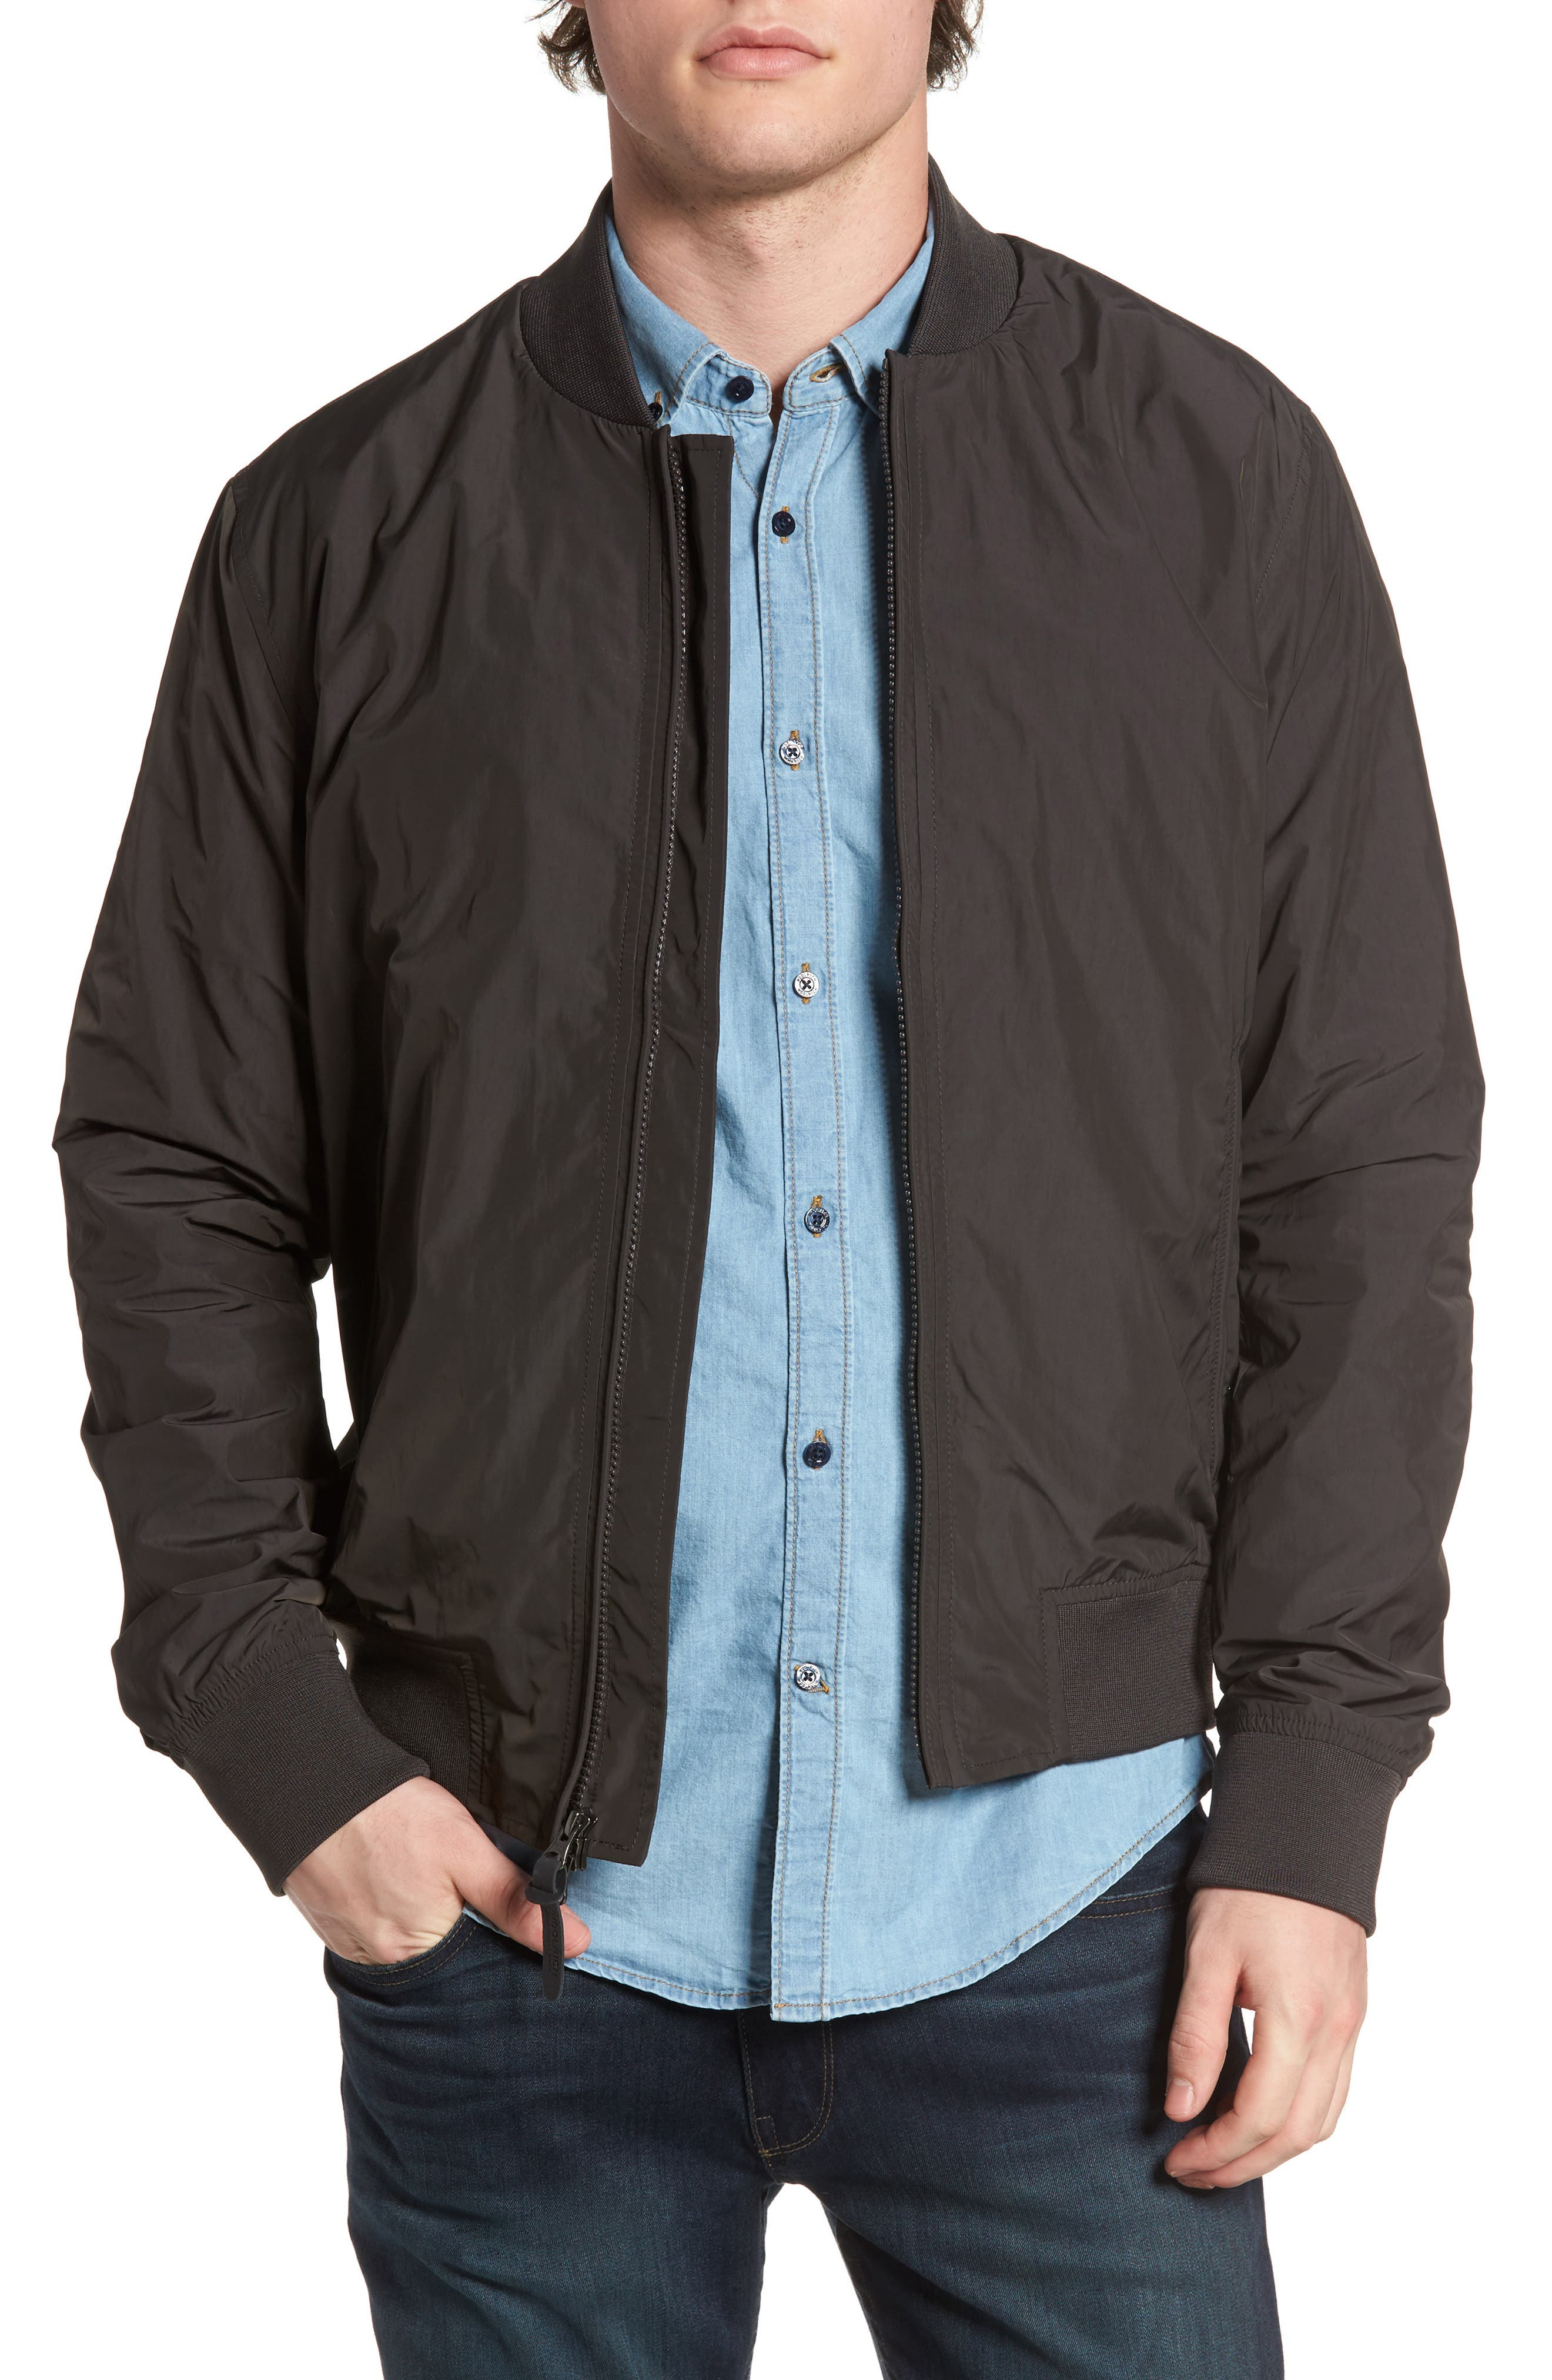 Alternate Image 1 Selected - Woolrich John Rich Shore Bomber Jacket